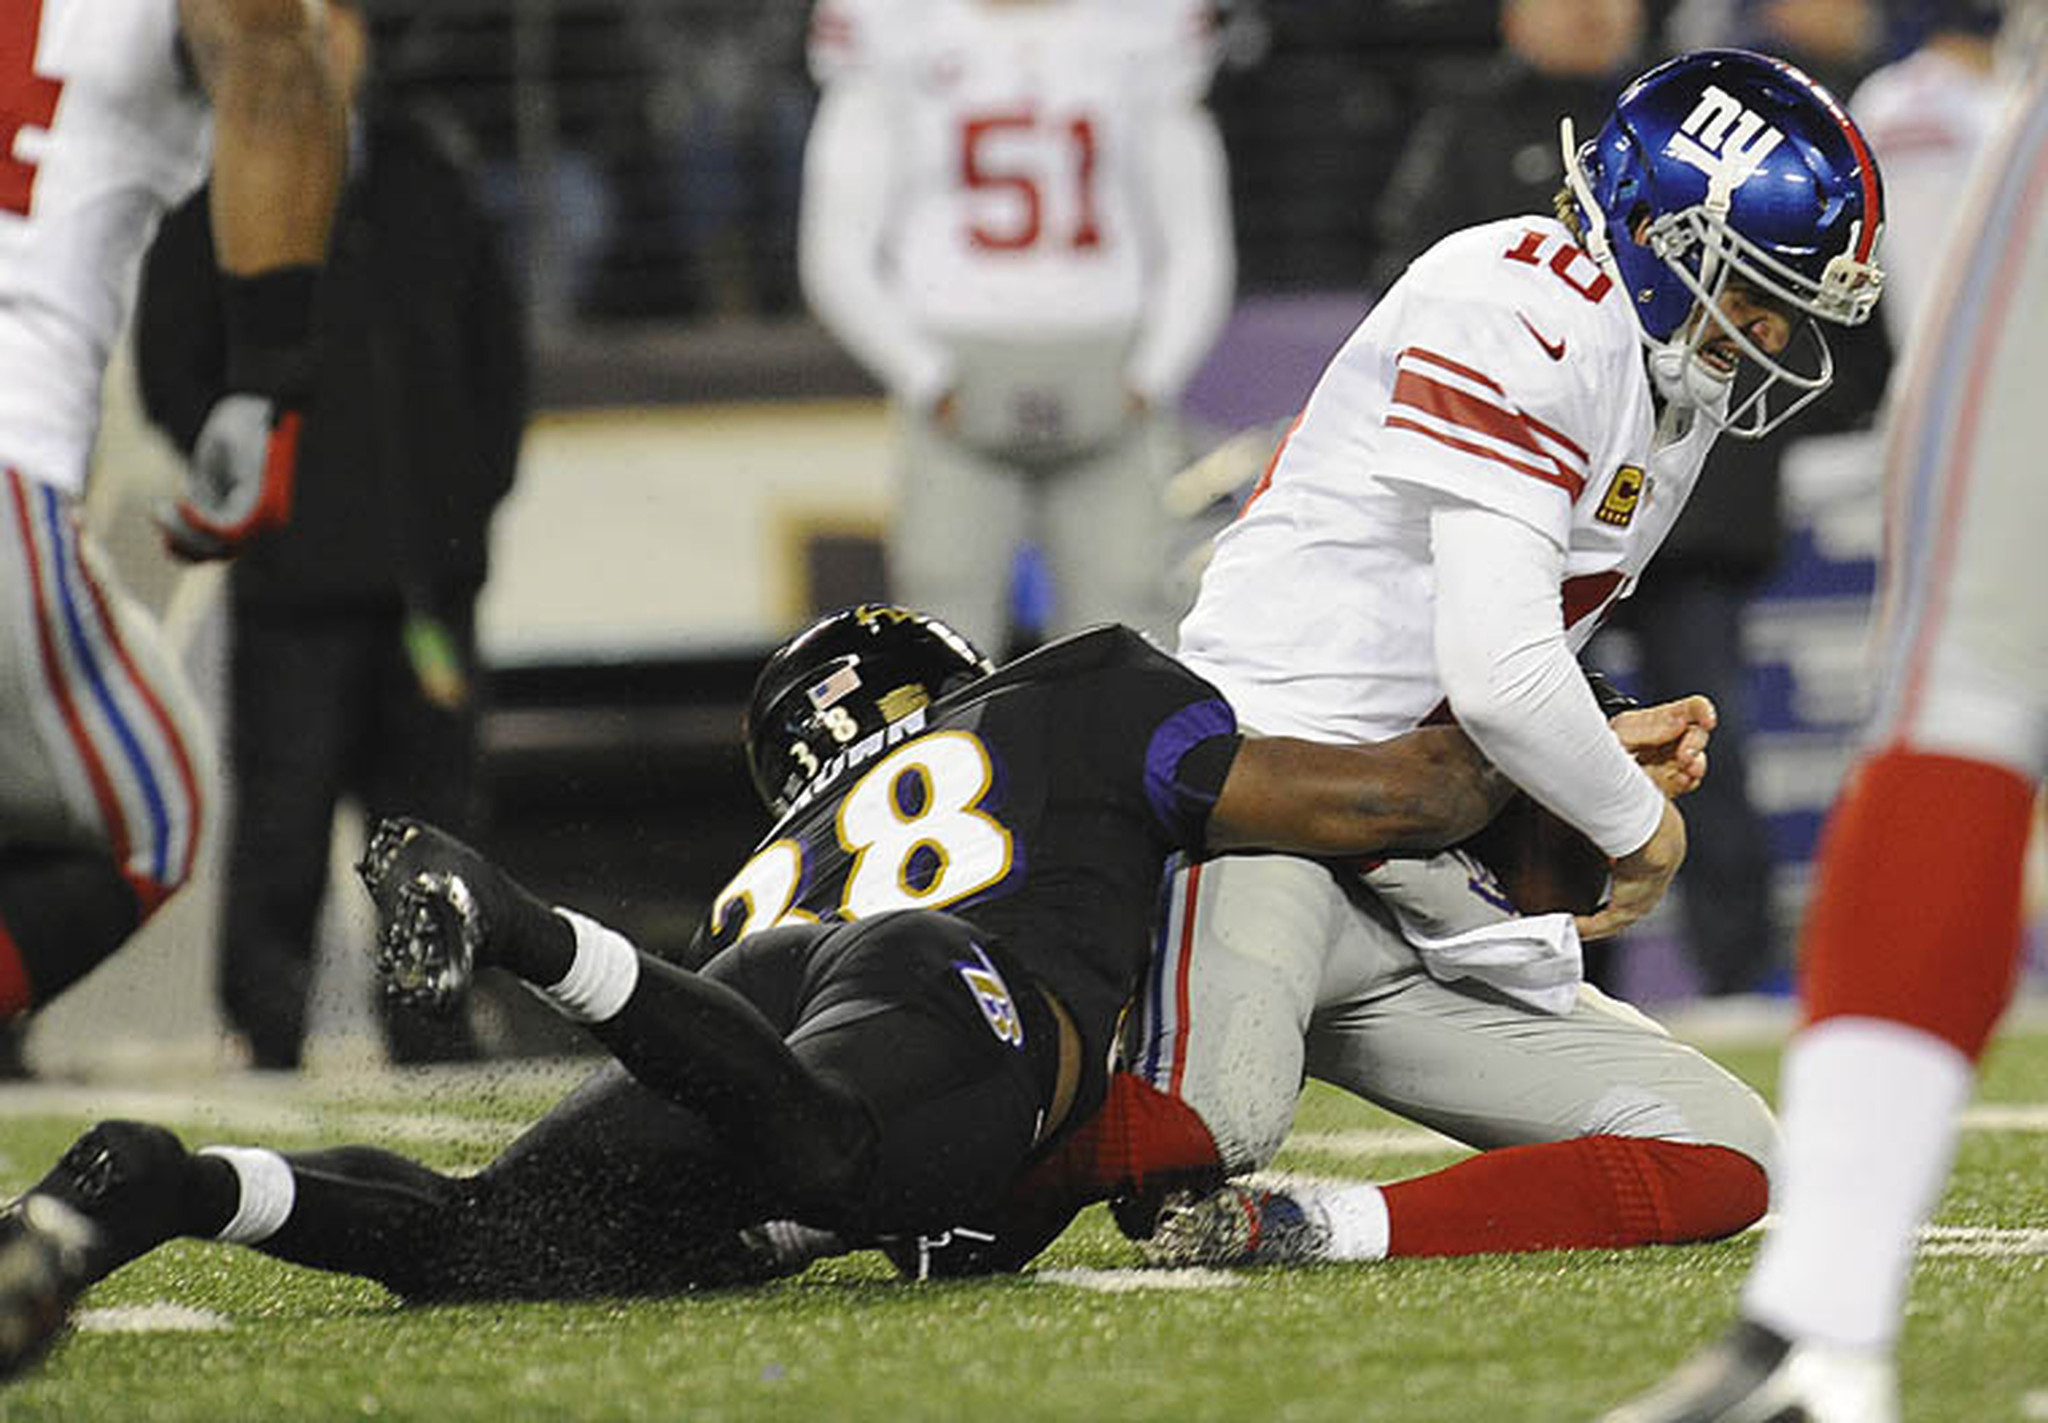 Bs-sp-ravens-giants-1016-20161014